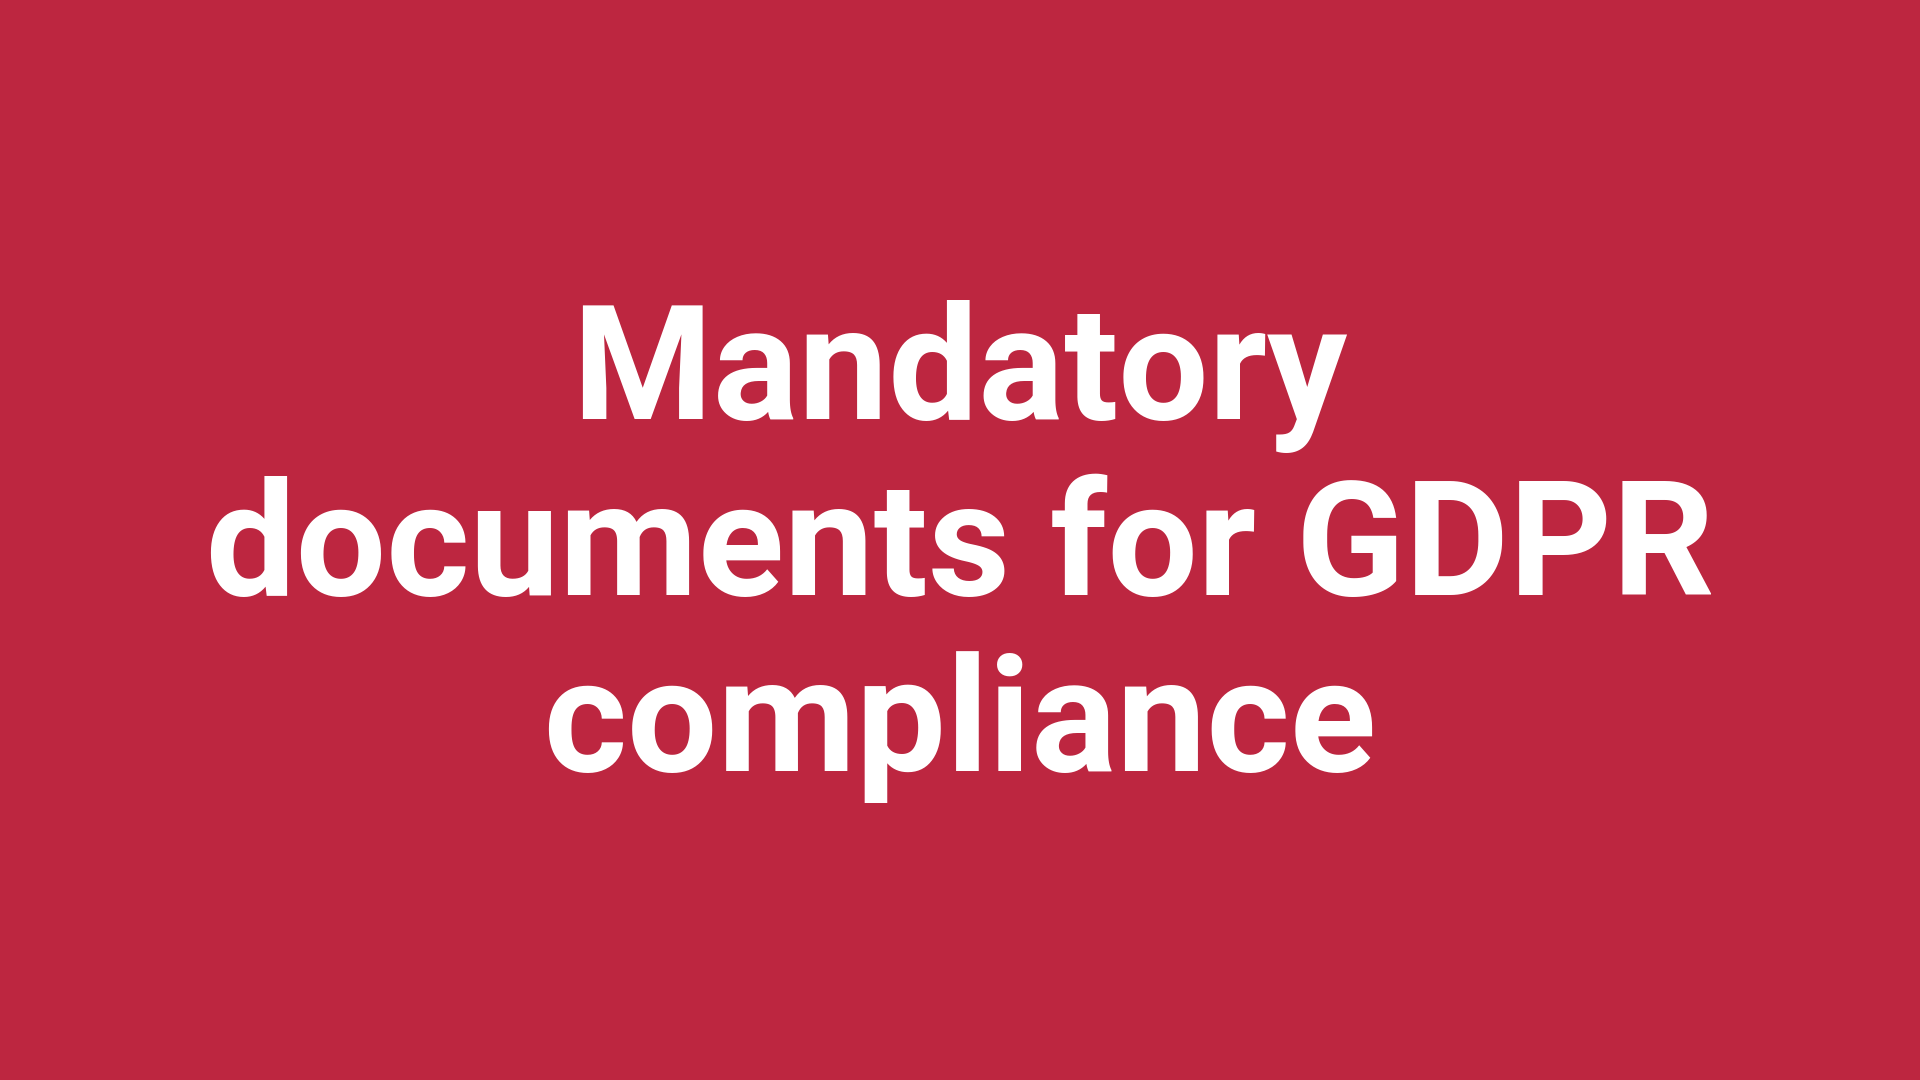 Mandatory documents for GDPR compliance